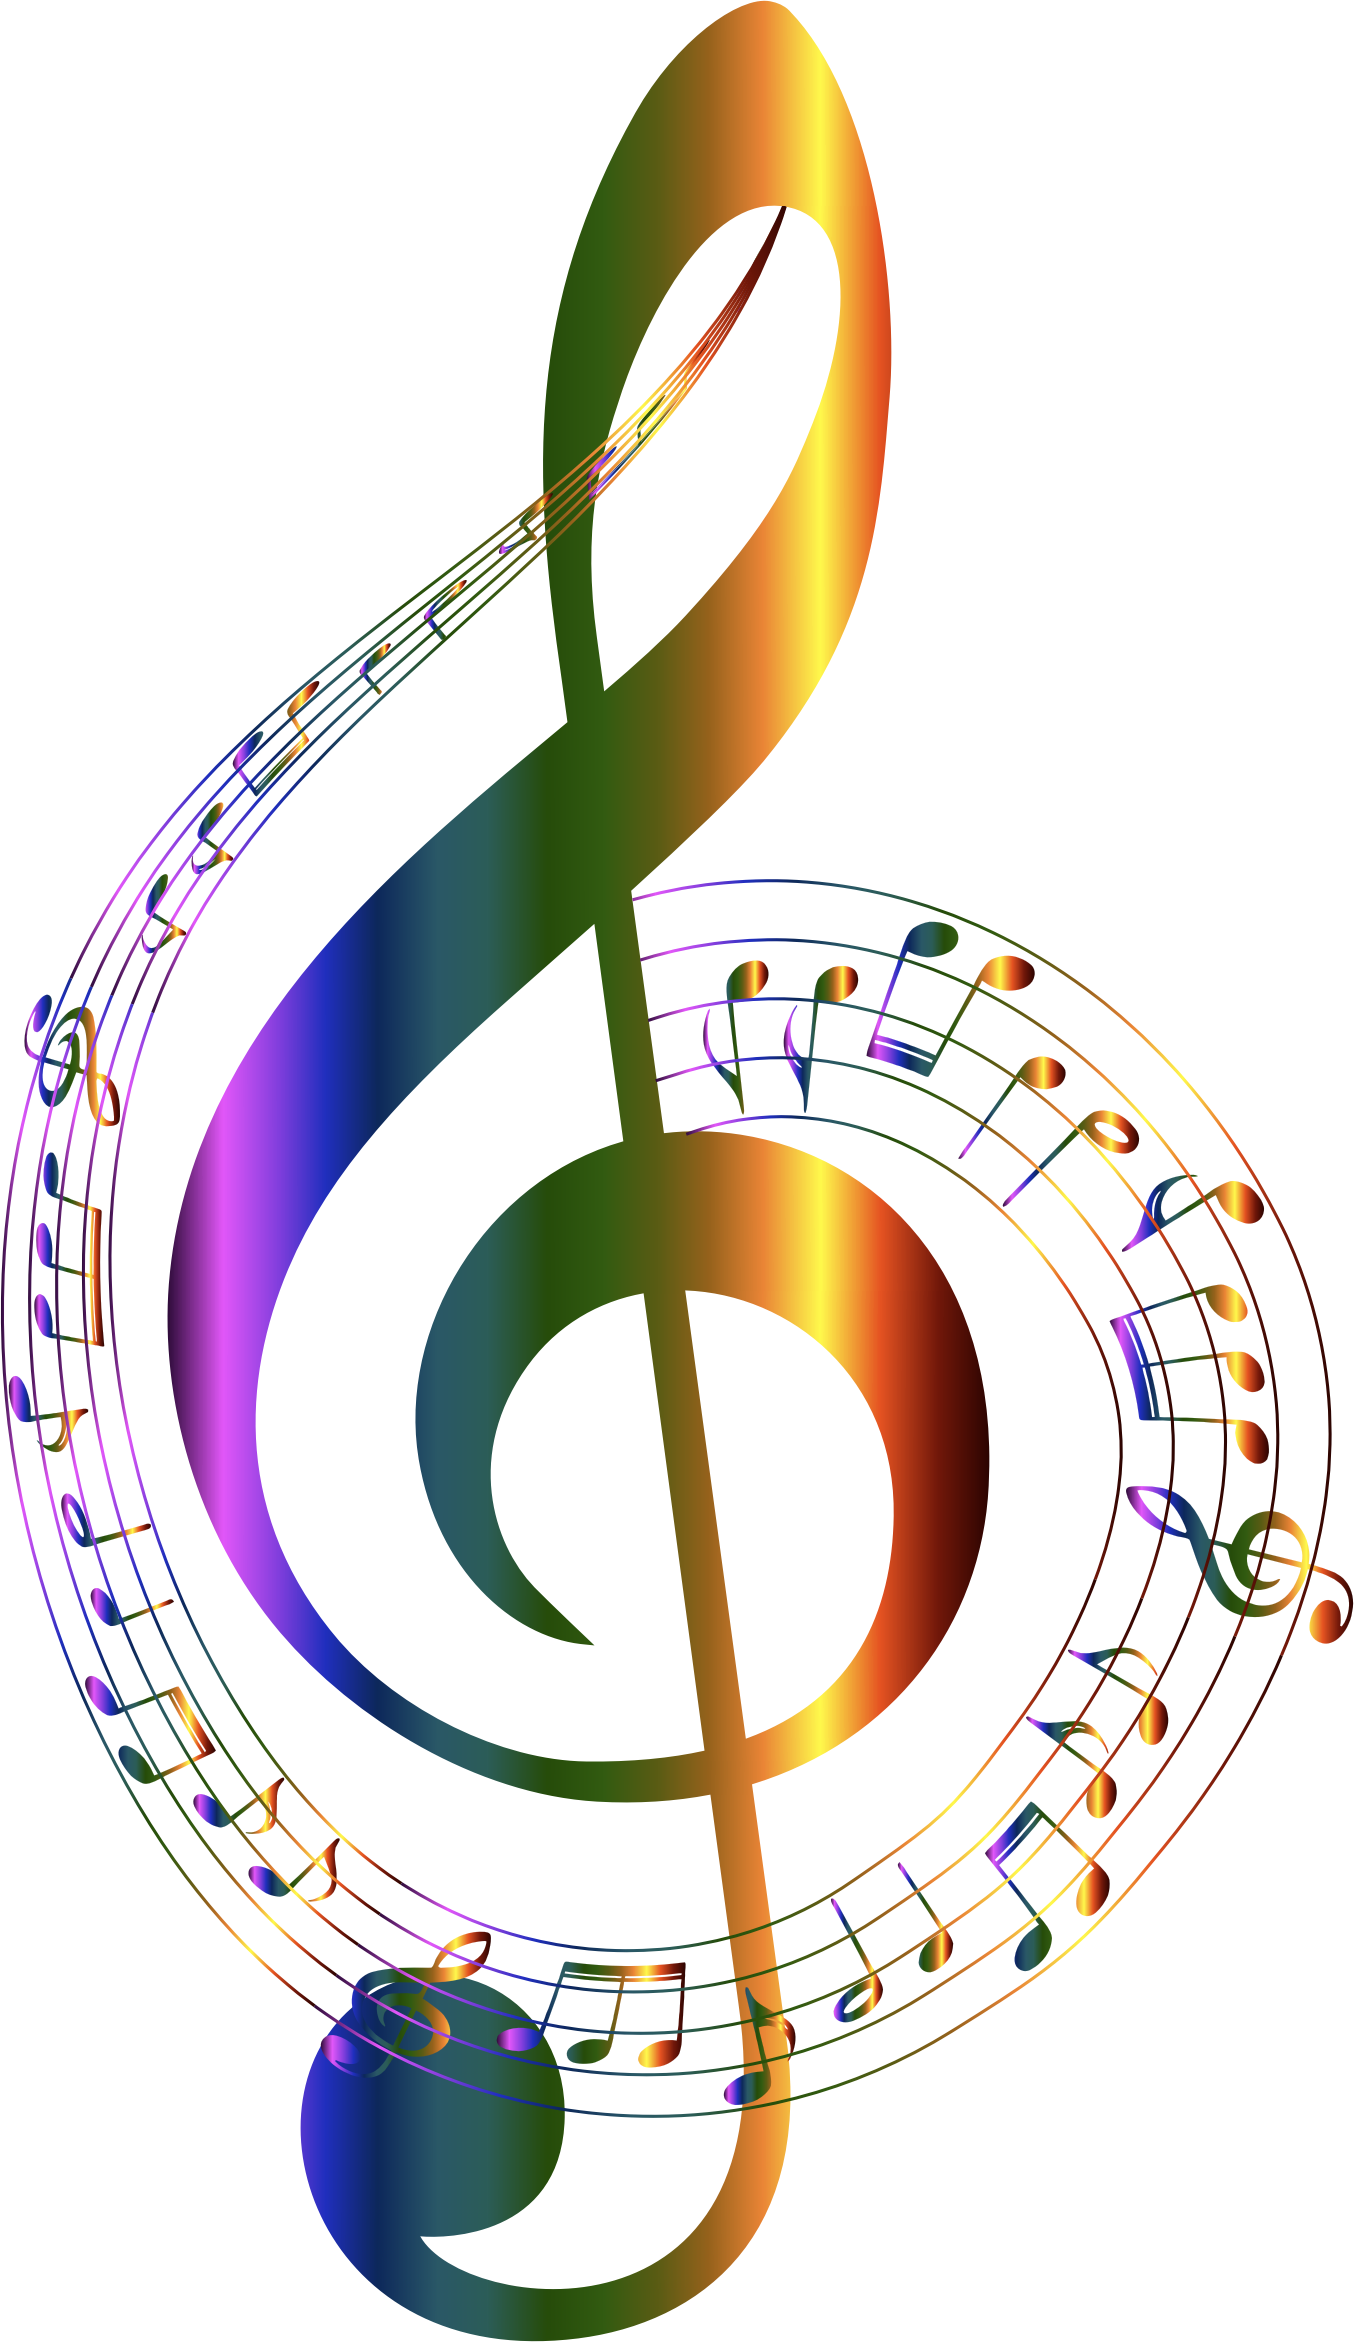 Cool clipart transparent background. Chromatic musical notes typography